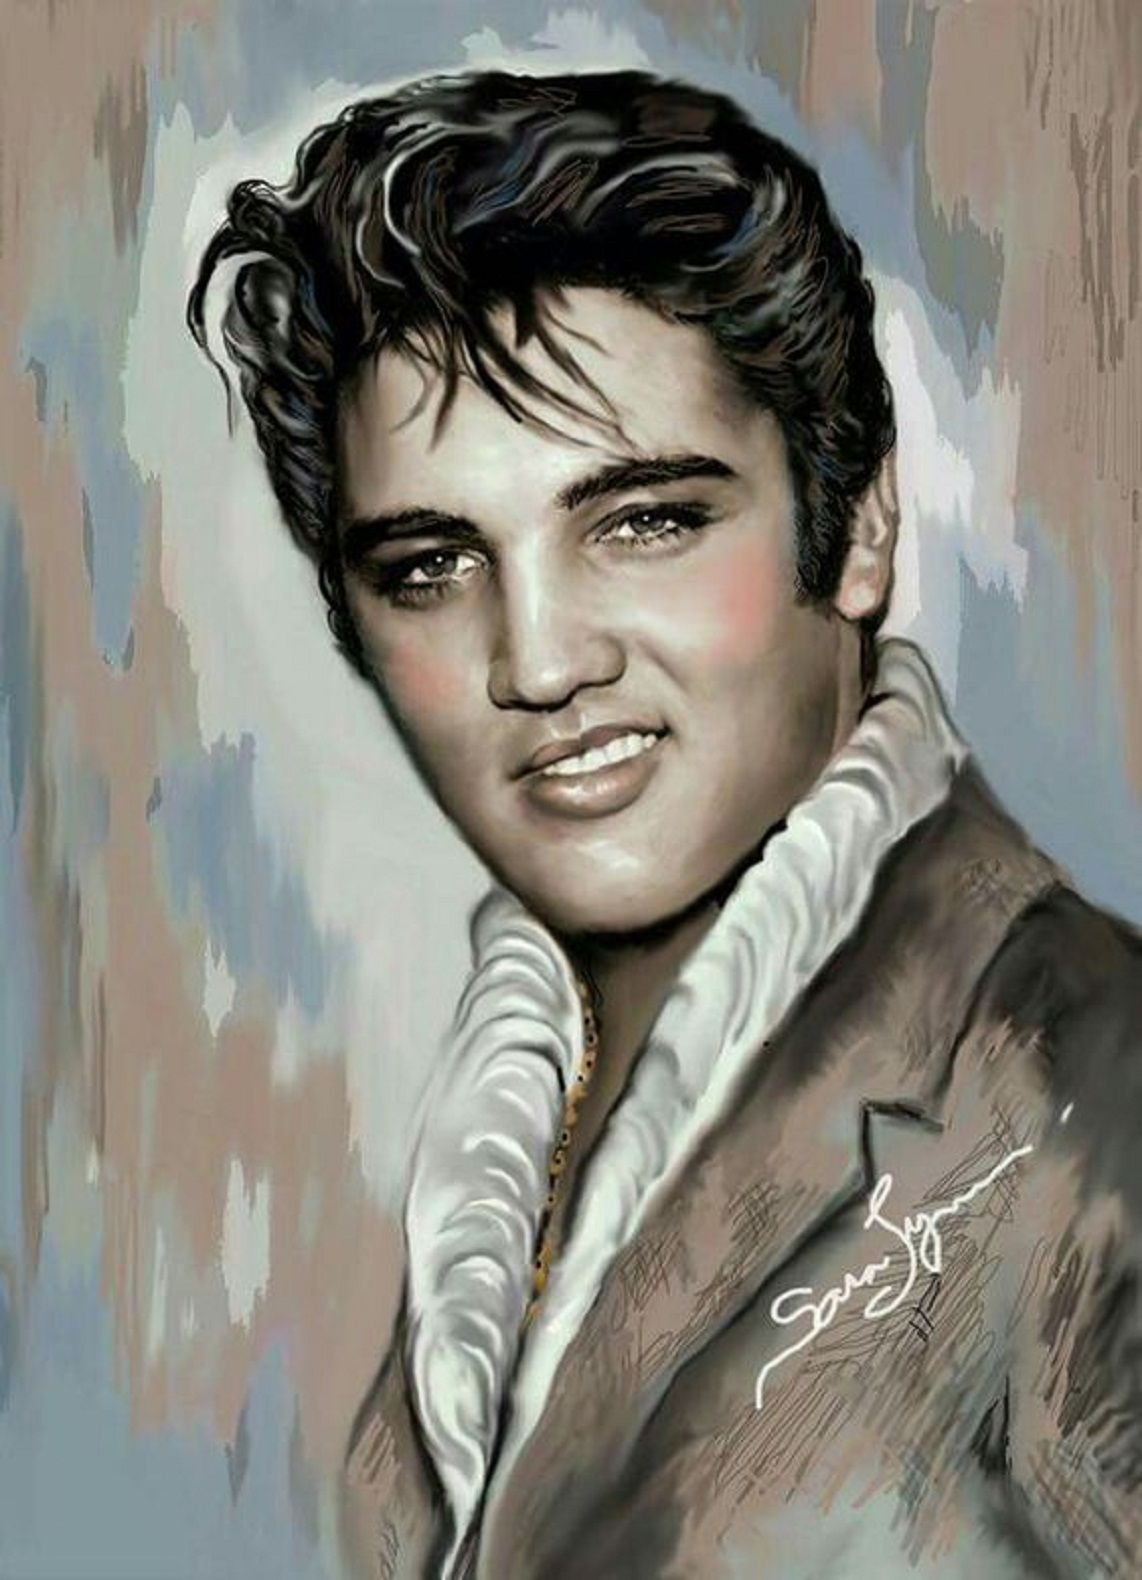 Elvis Presley I Ll Hold You In My Heart Till I Can Hold In My Arms Elvis Presley Pictures Elvis Presley Elvis Presley Photos